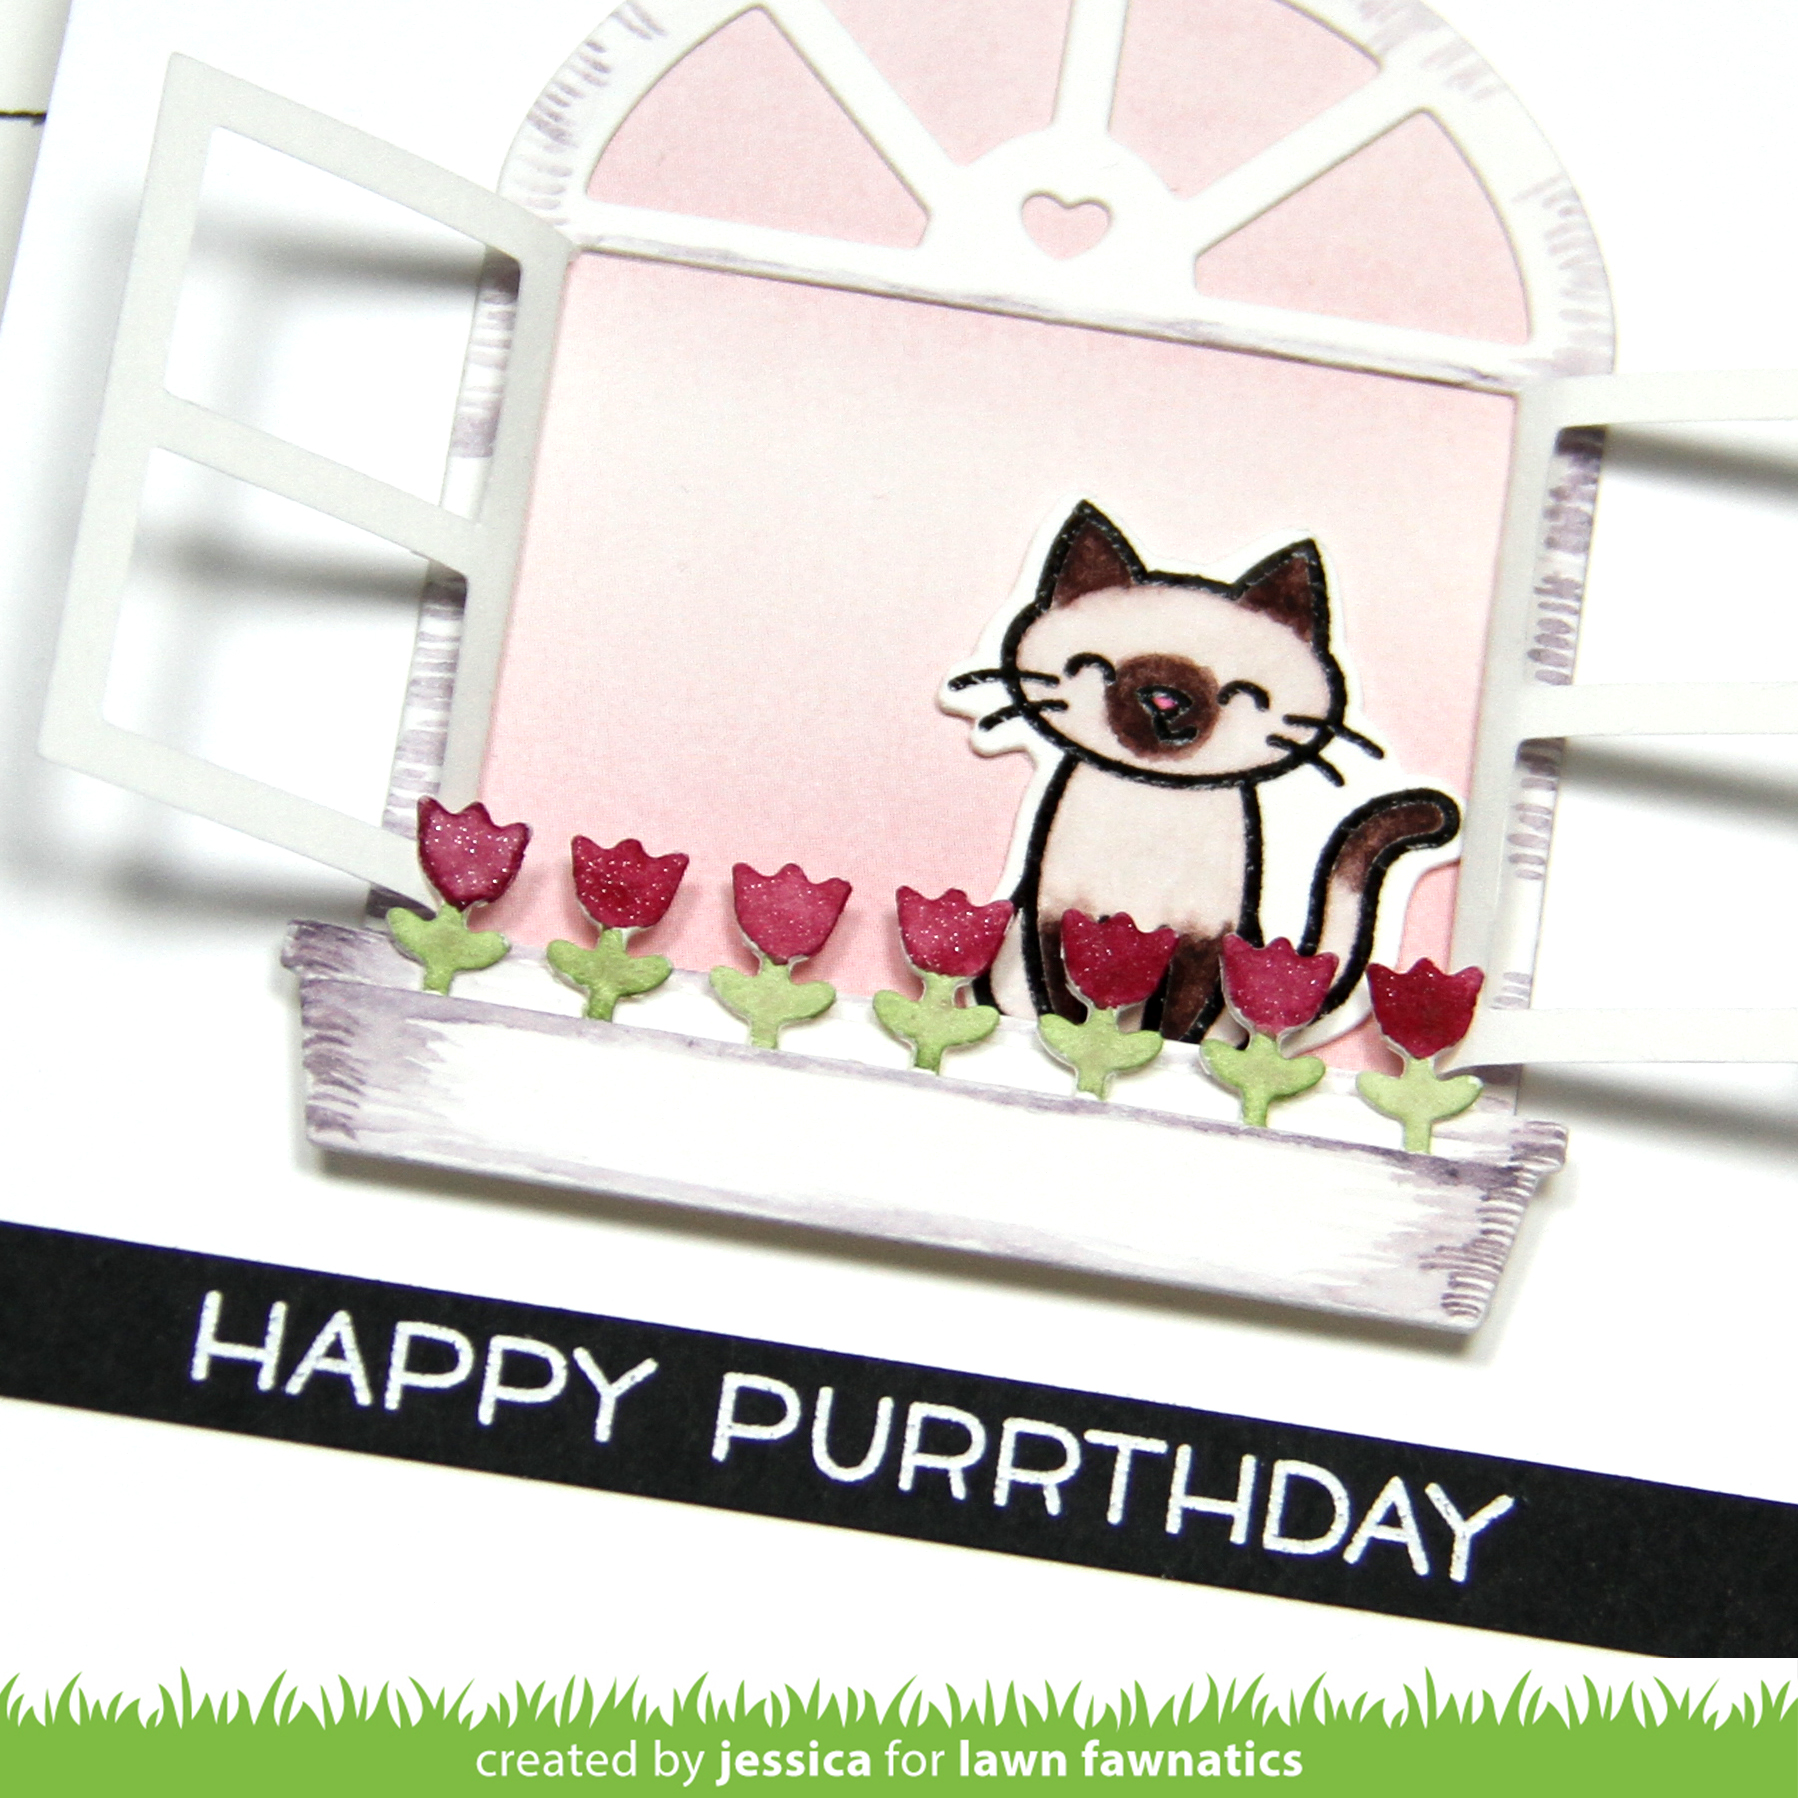 Happy Purrthday by Jessica Frost-Ballas for Lawn Fawnatics